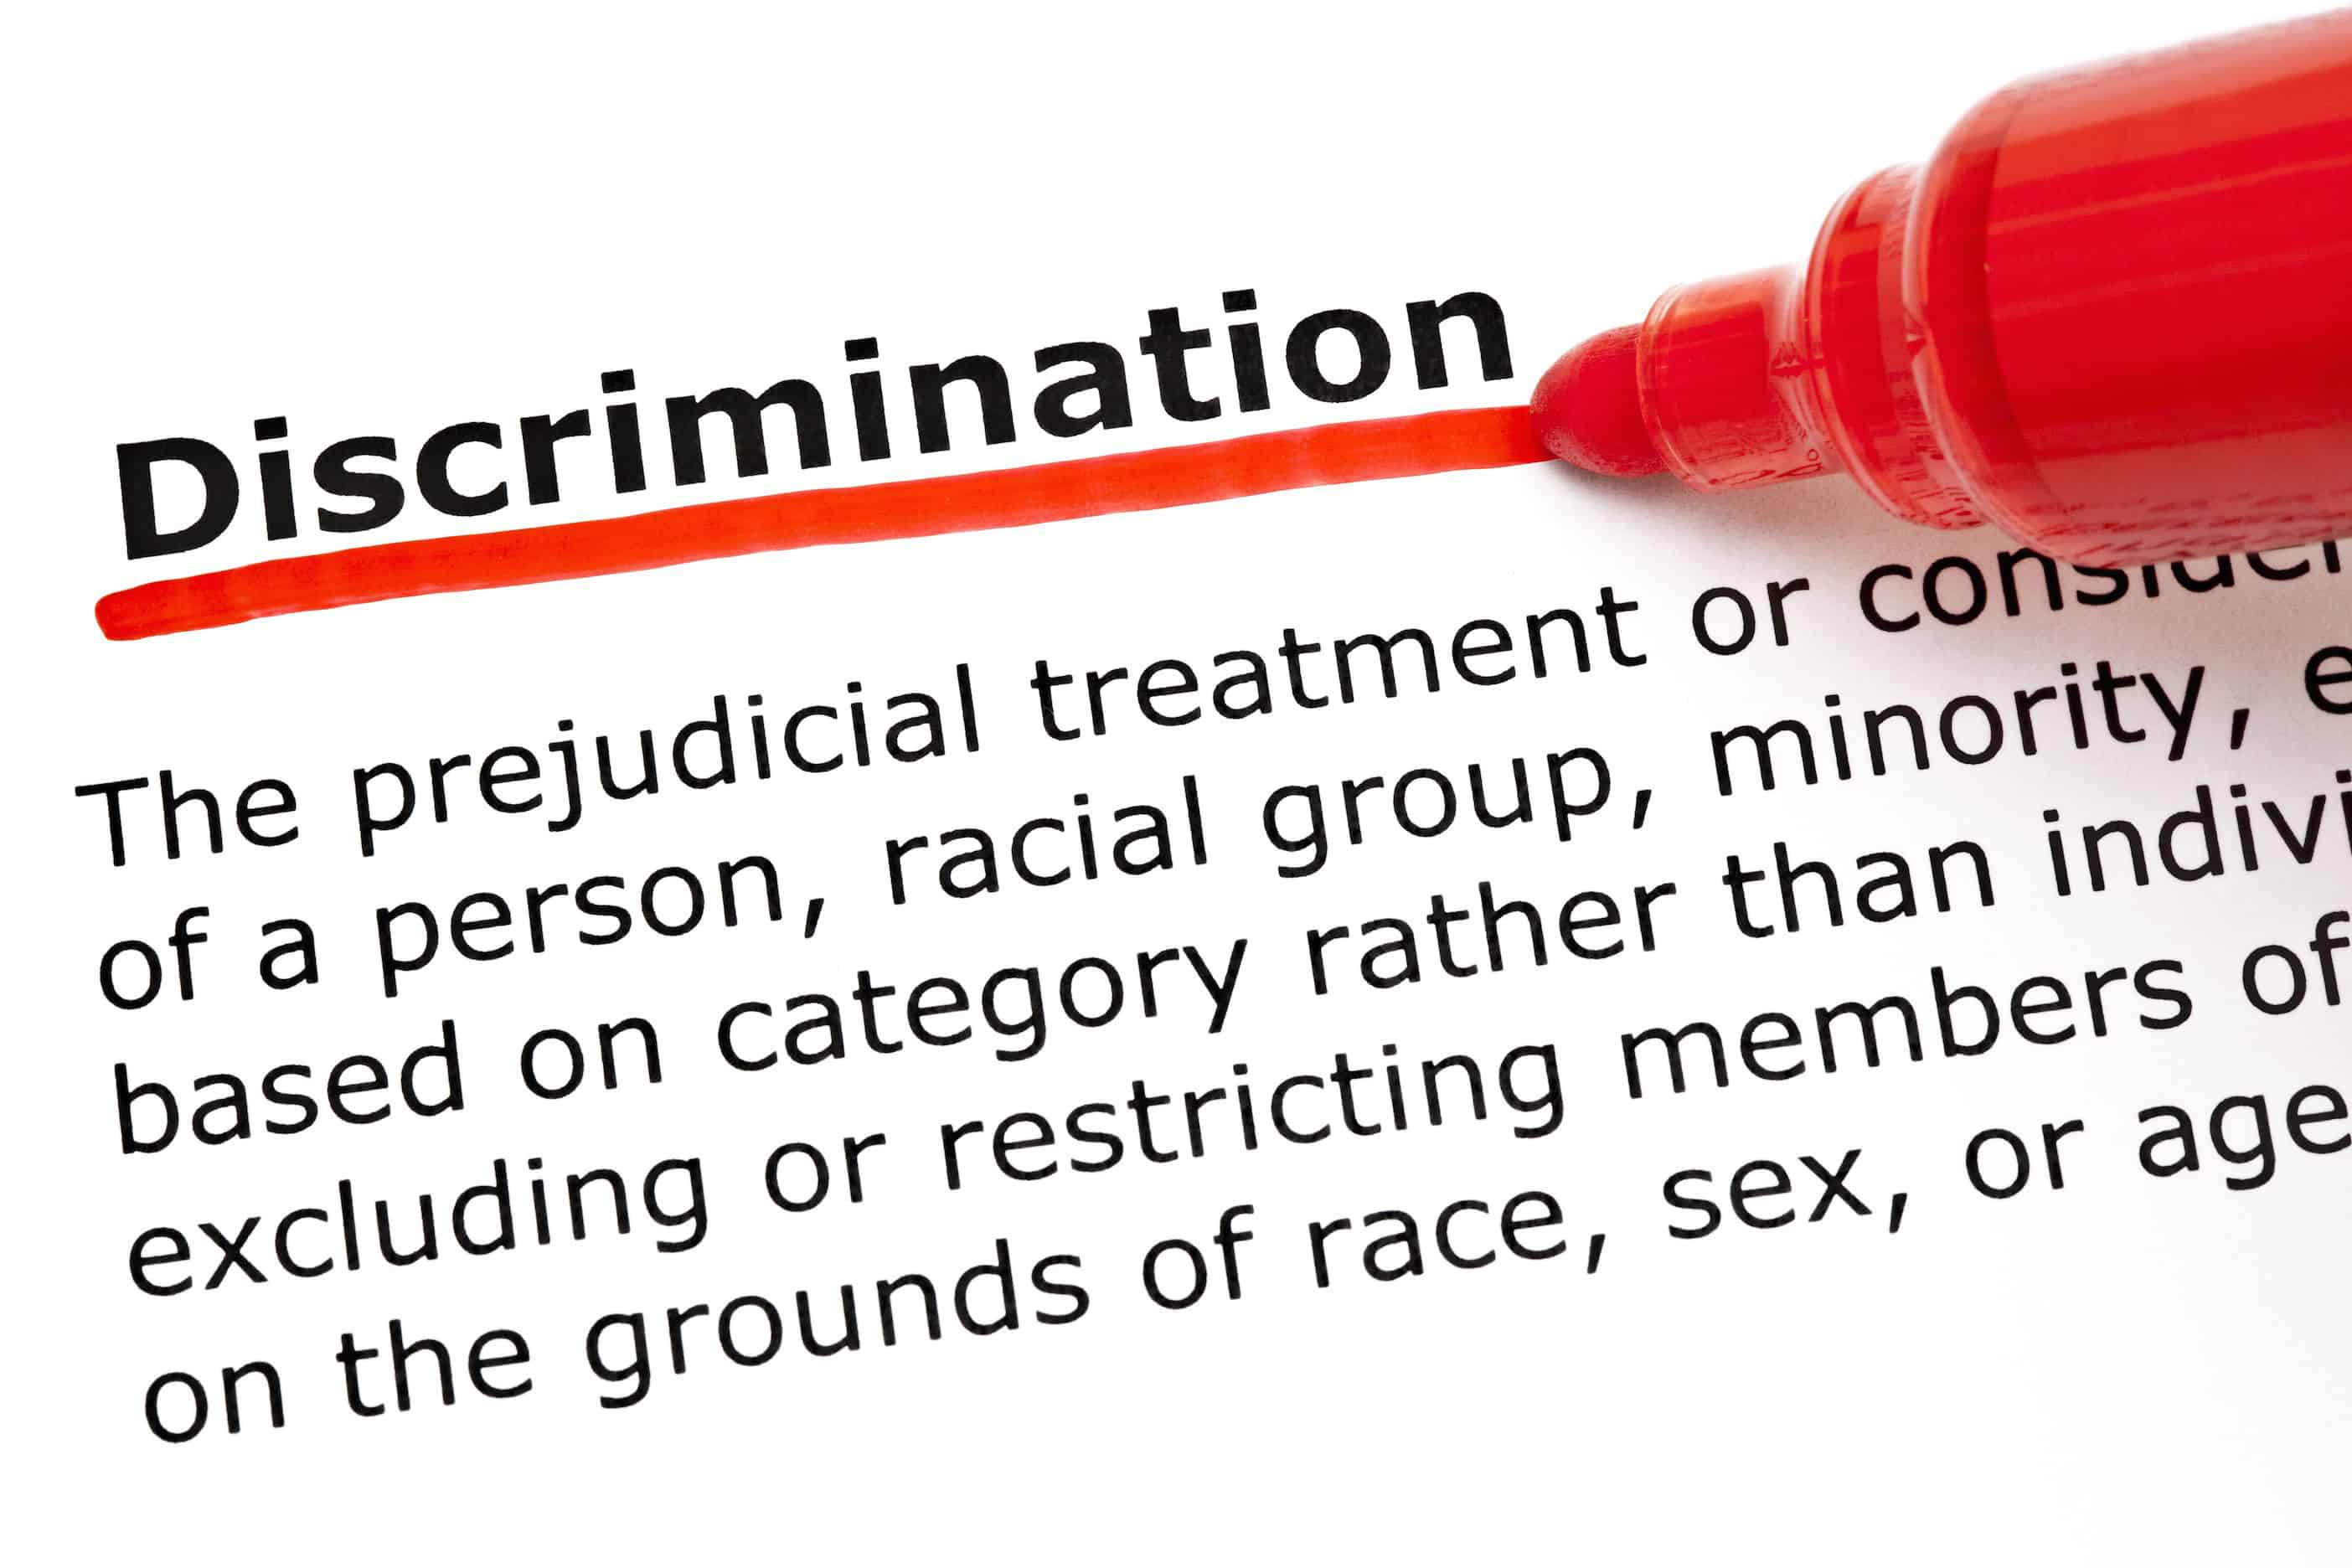 I need articles on Discrimination / Predjuice in medical profession?